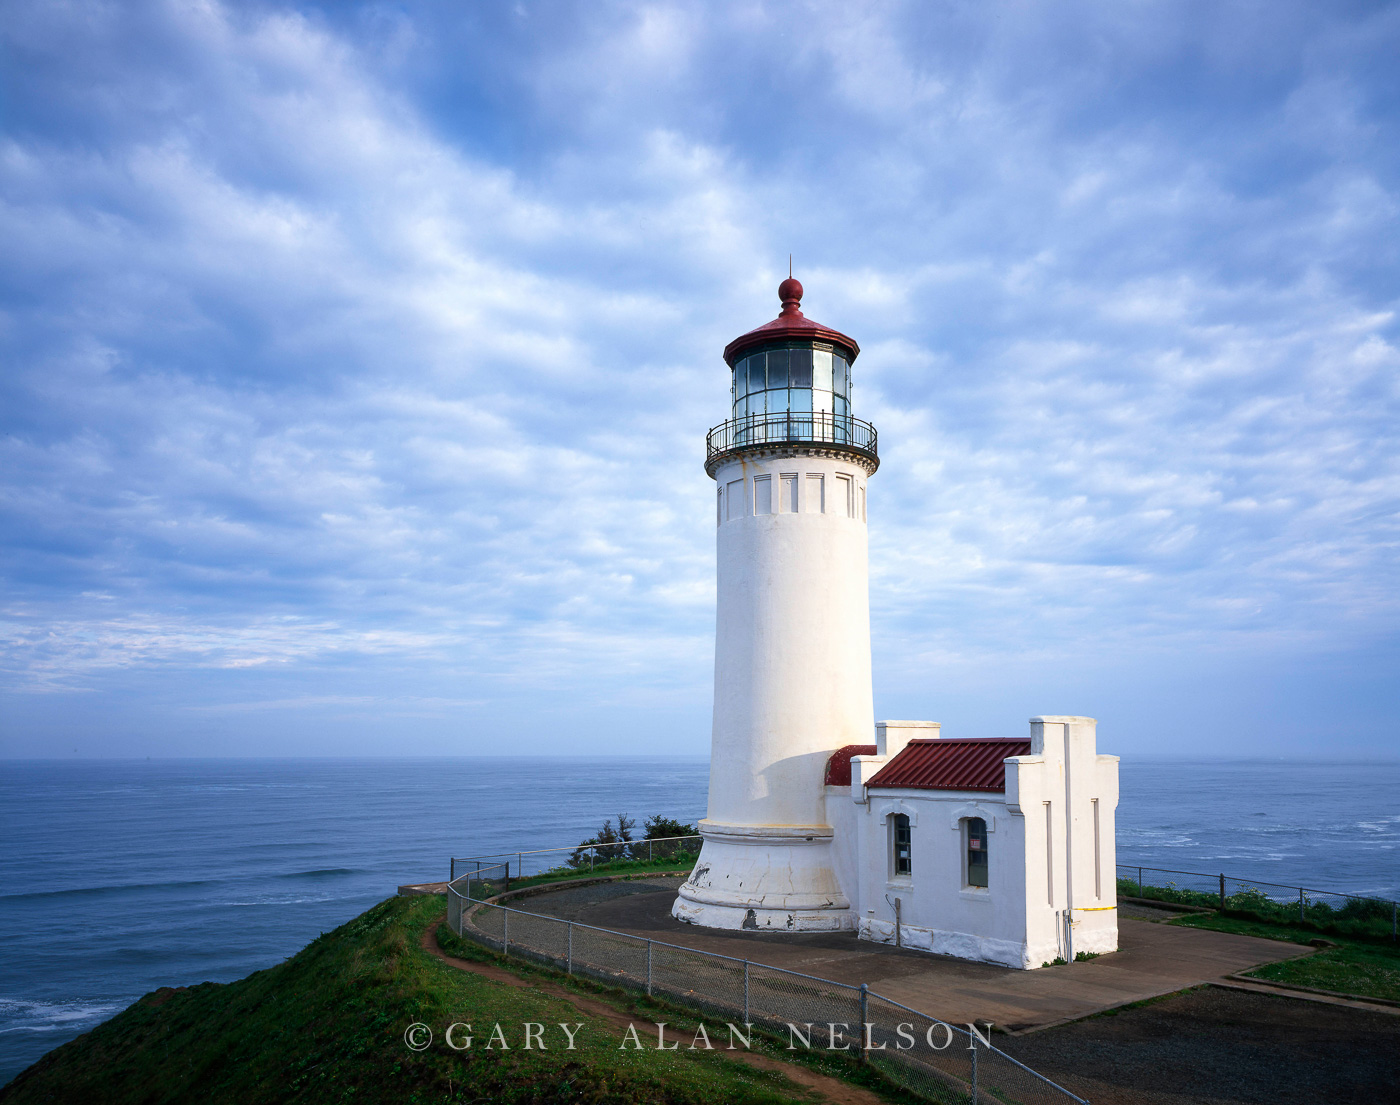 WA-03-4-LH Scattered clouds over the North Head Lighthouse, EST. 1998, Fort Canby State Park, Washington